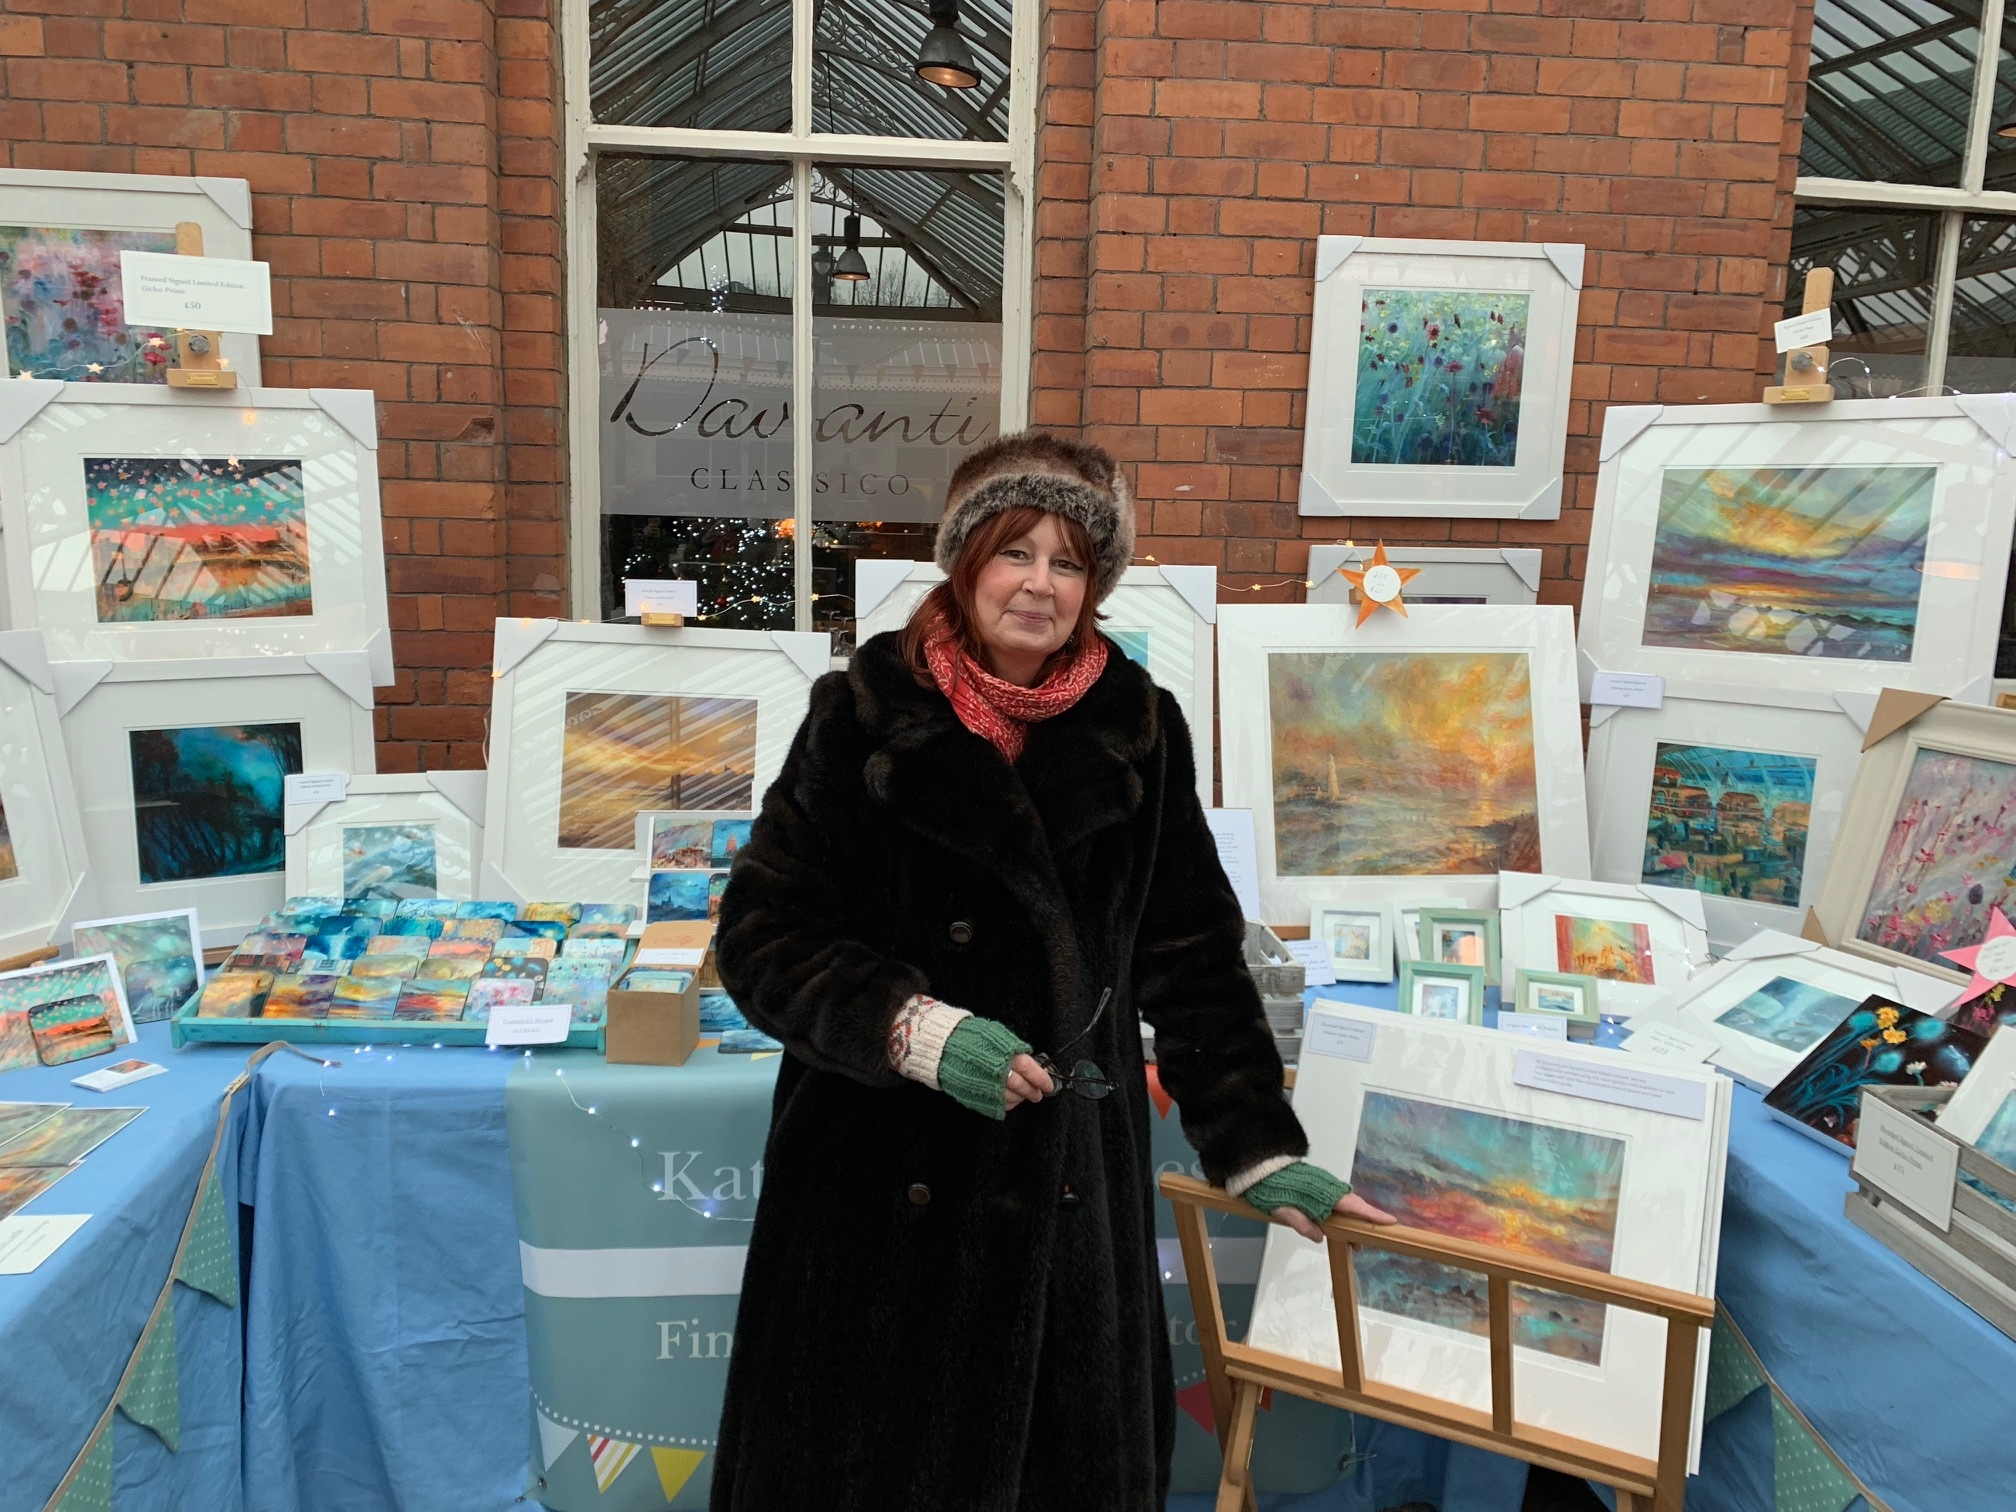 Kate Van Suddese at her stall in Tynemouth Market